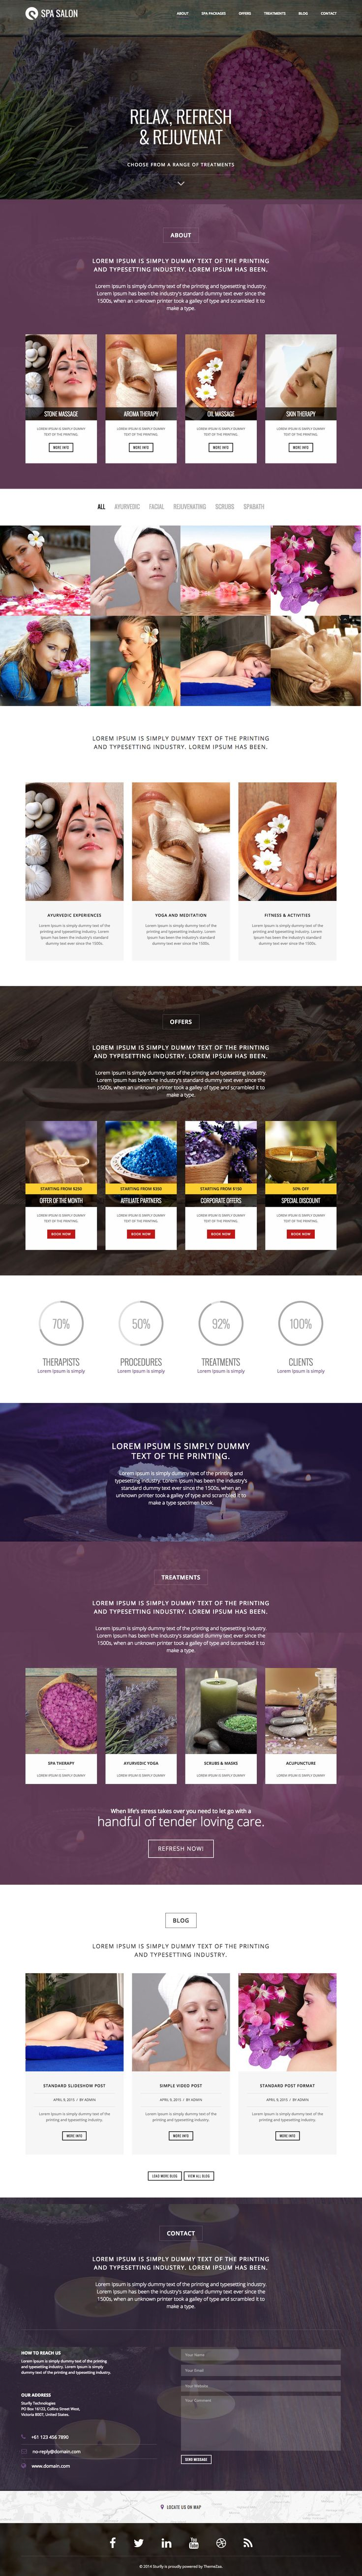 'Sturlly' is a One Page WordPress theme that caters for many different industries. I find it interesting to see how theme shops go about targeting a market for their new products and I think NRGthemes have a good job with 8 completely different demos. There are theme demos for Fashion, Restaurant, Interior Design, Travel Agency, Personal Resume, Design Agency, Architecture Firm and Spa Salon (seen in this screenshot). Good to know this theme has a 5 star rating.